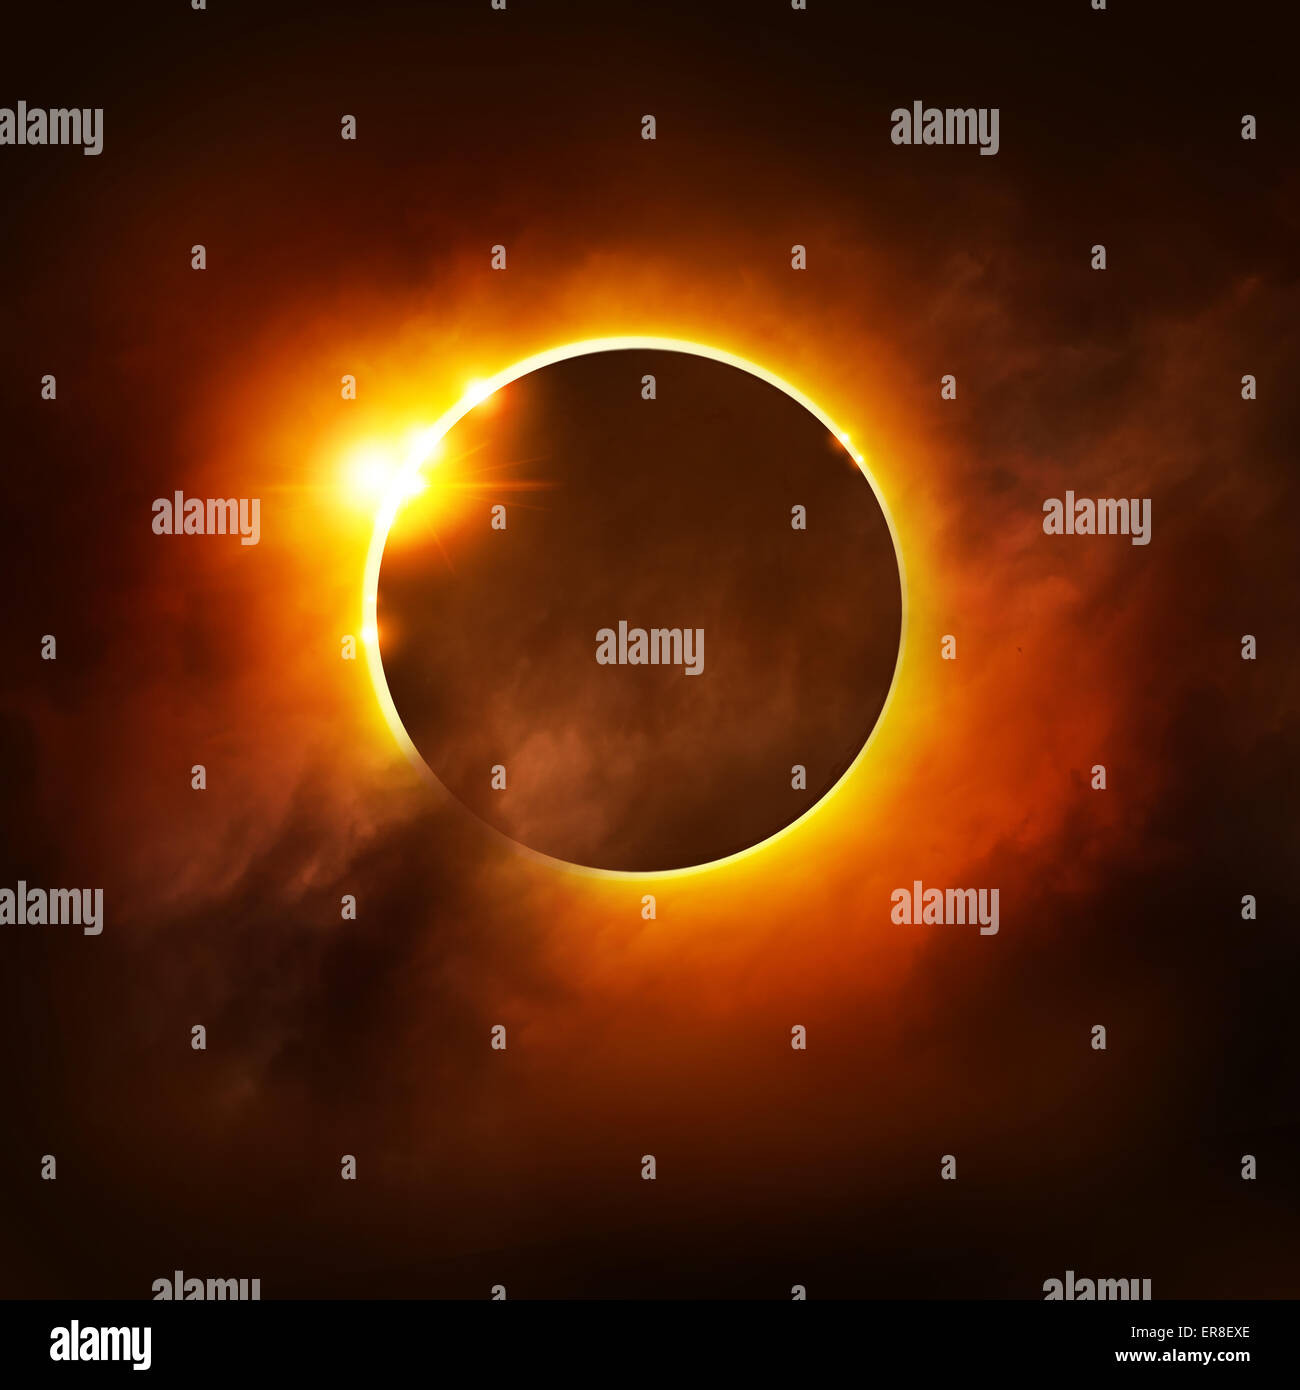 A Total Eclipse of the Sun. Illustration. - Stock Image